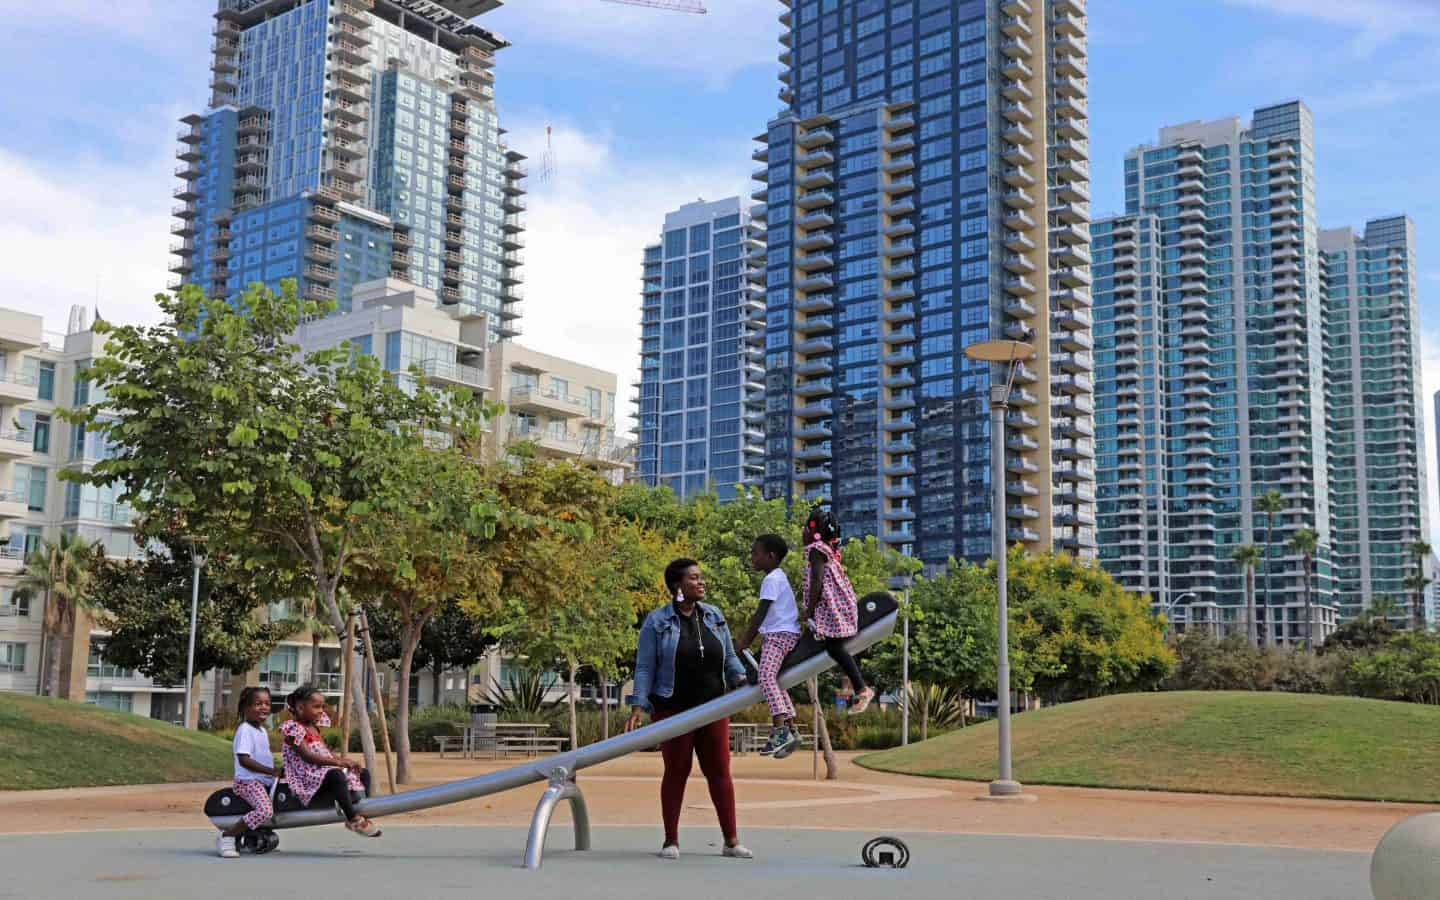 Family playing in Waterfront Park in San Diego